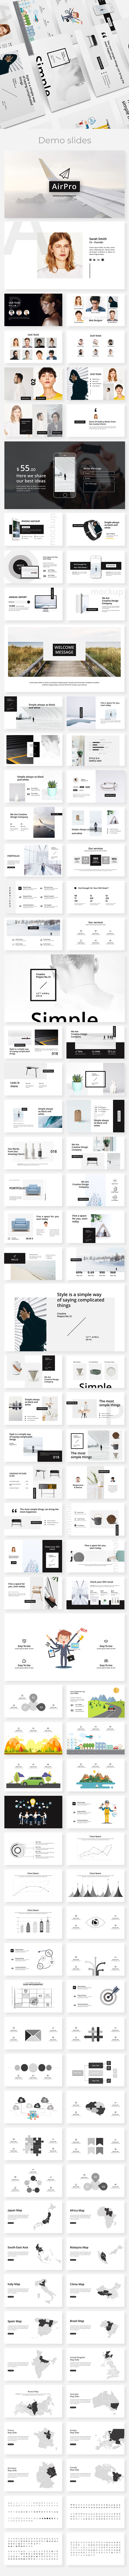 AirPro Minimal Google Slide Template - Google Slides Presentation Templates